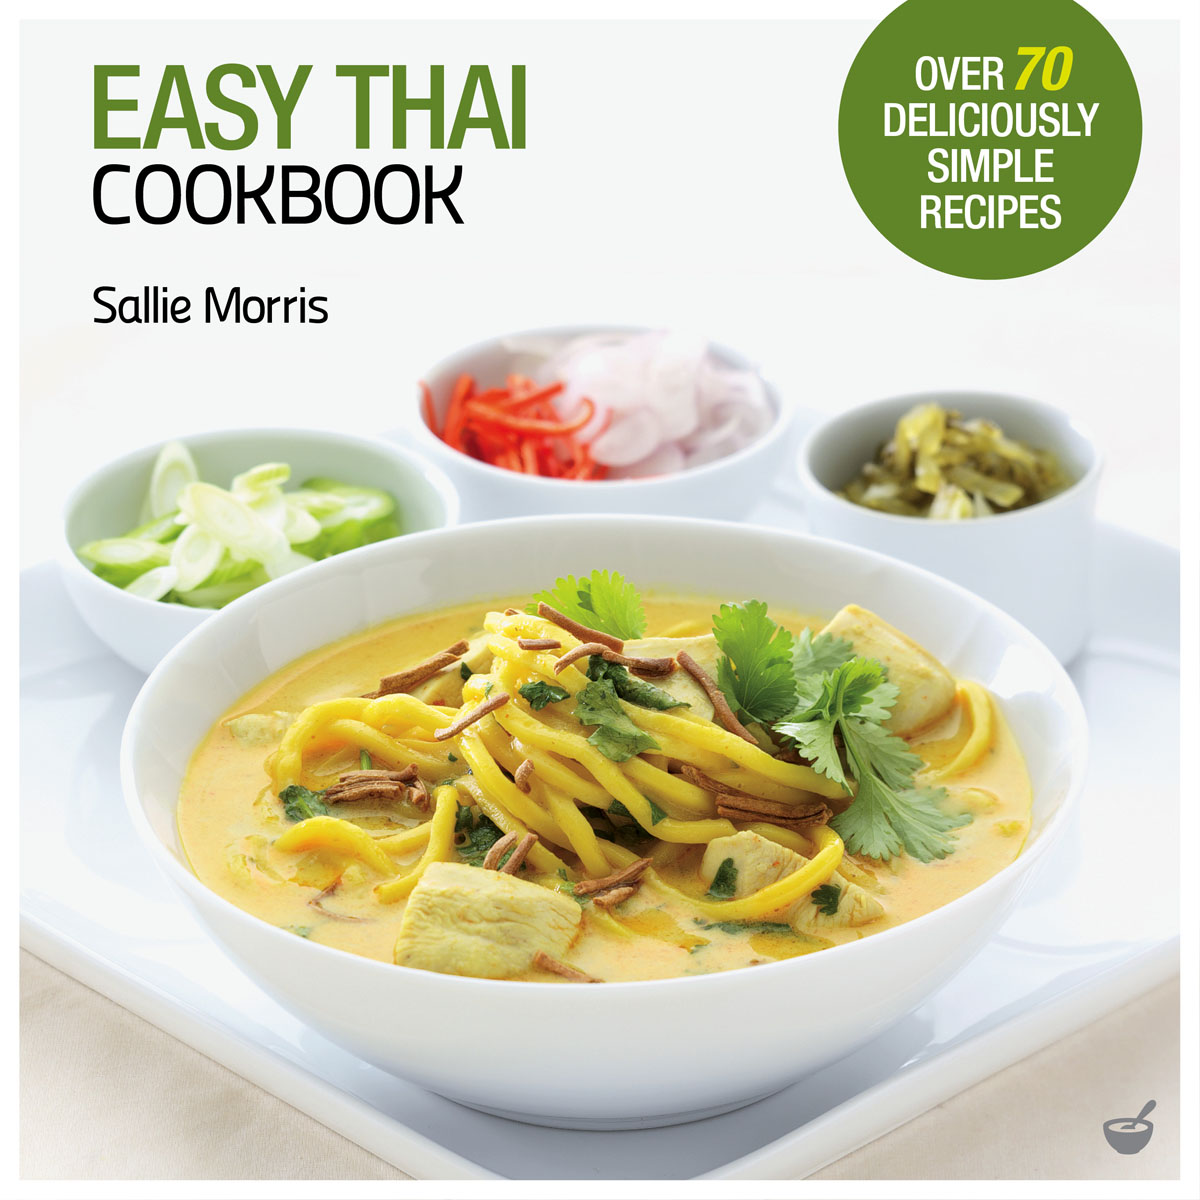 Cookery book jacket image for Easy Thai Cookbook by Sallie Morris